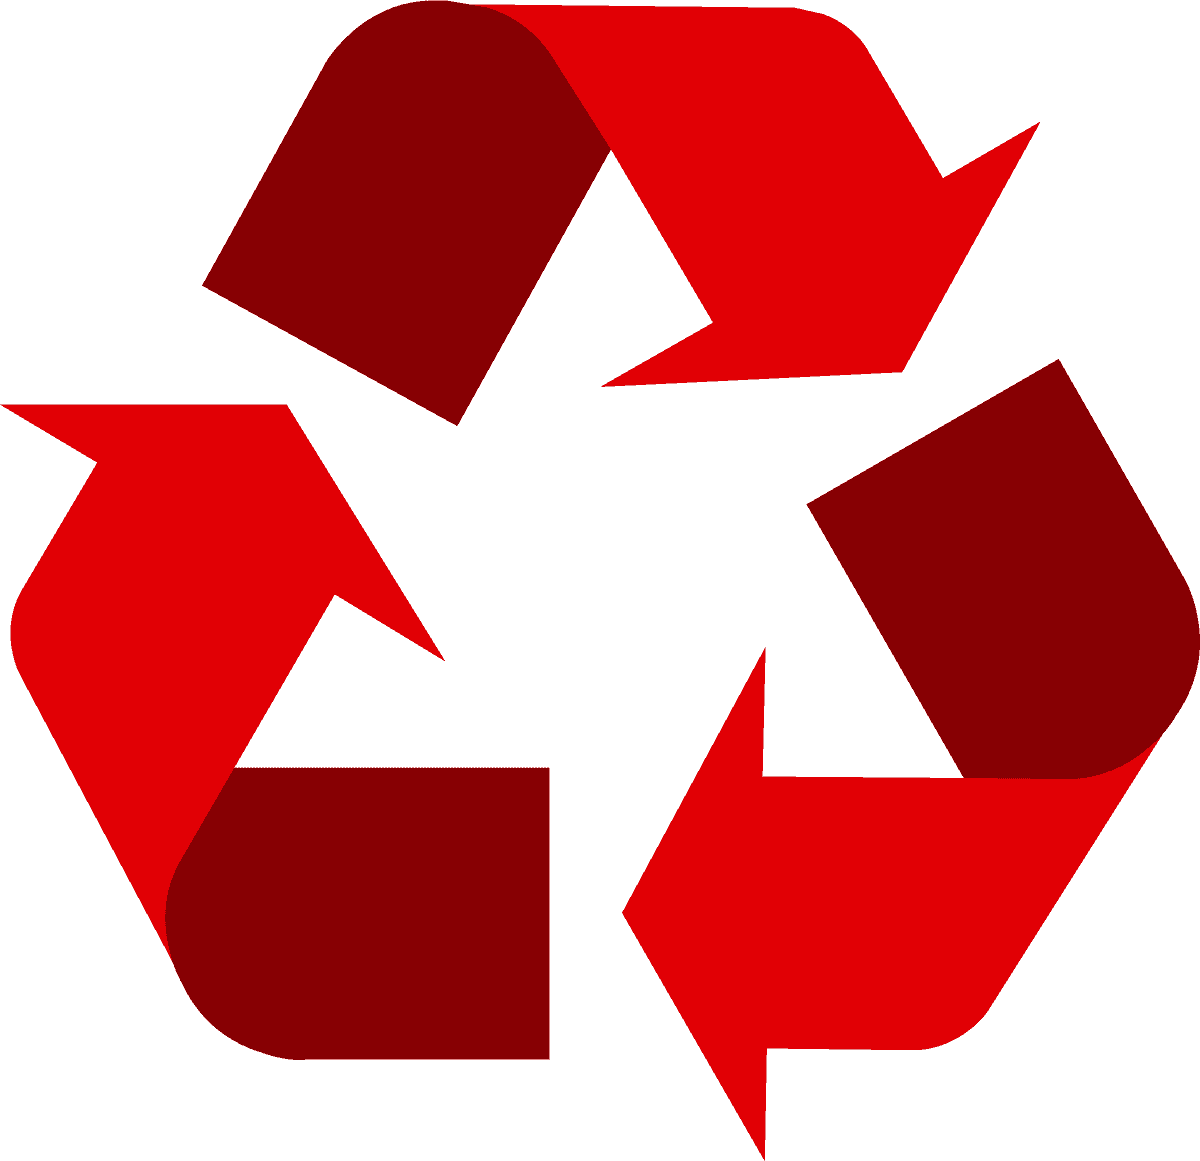 recycling-symbol-icon-twotone-red